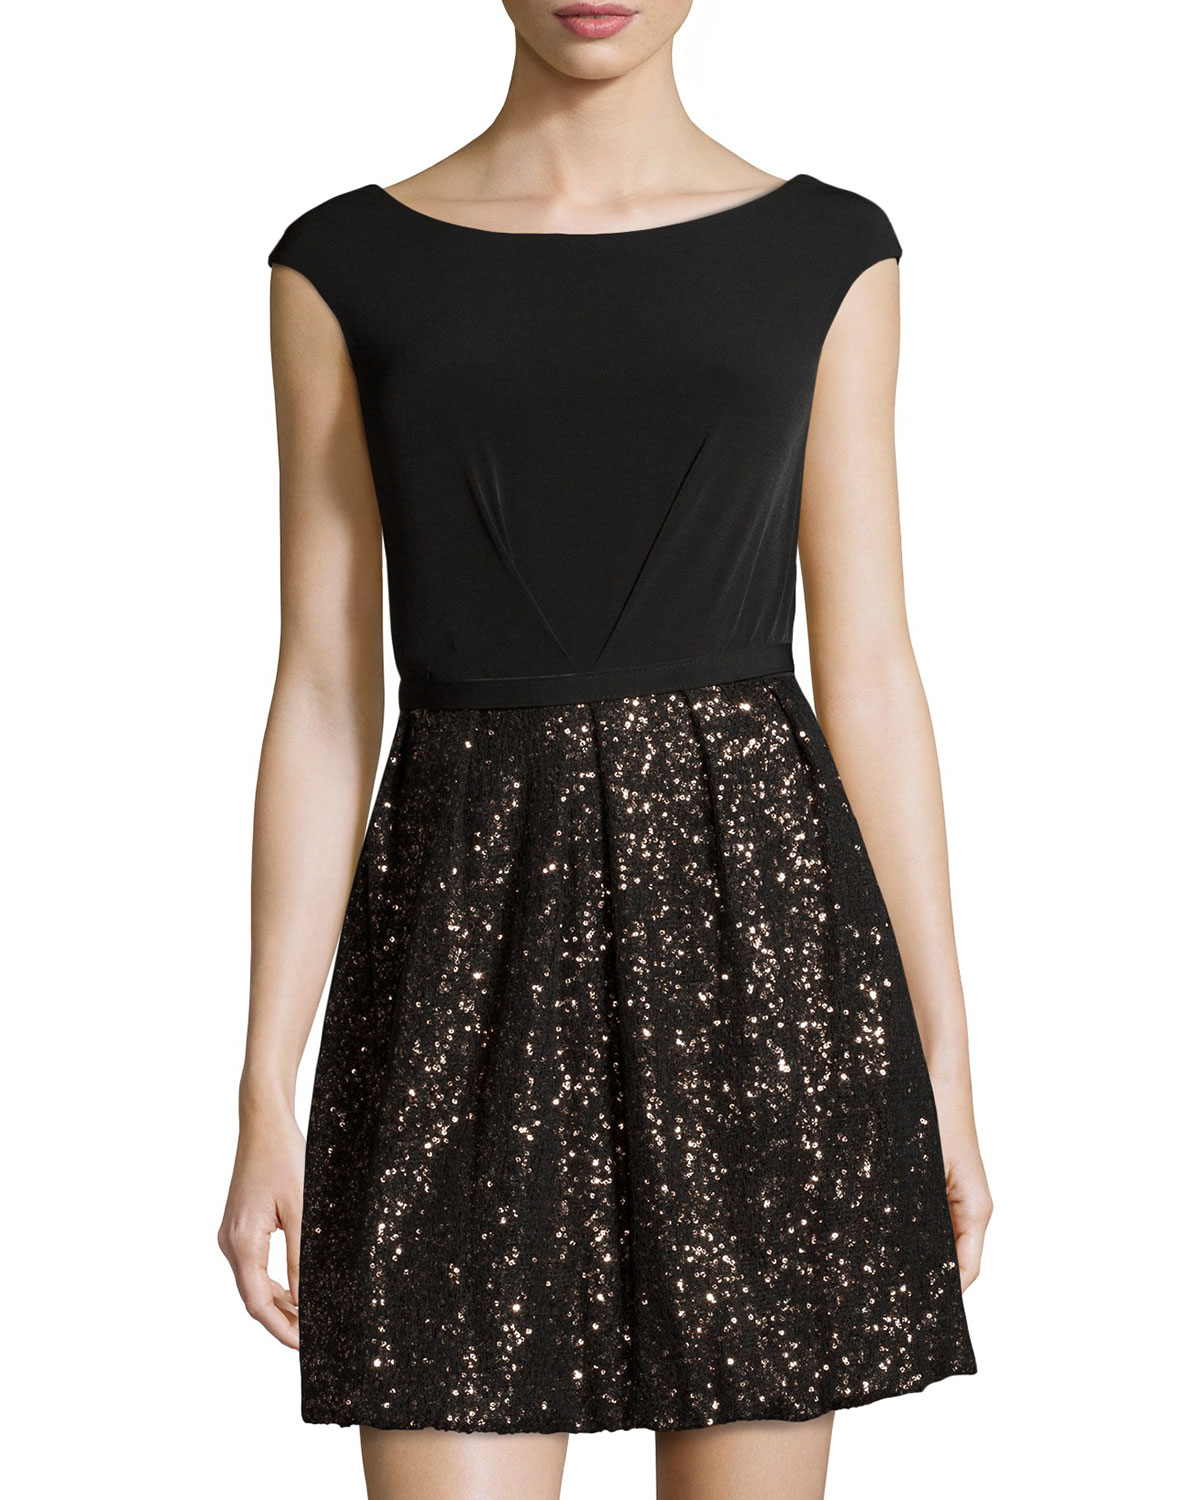 Laundry by Shelli Segal Sequin Skirt Dress - Cap Sleeve